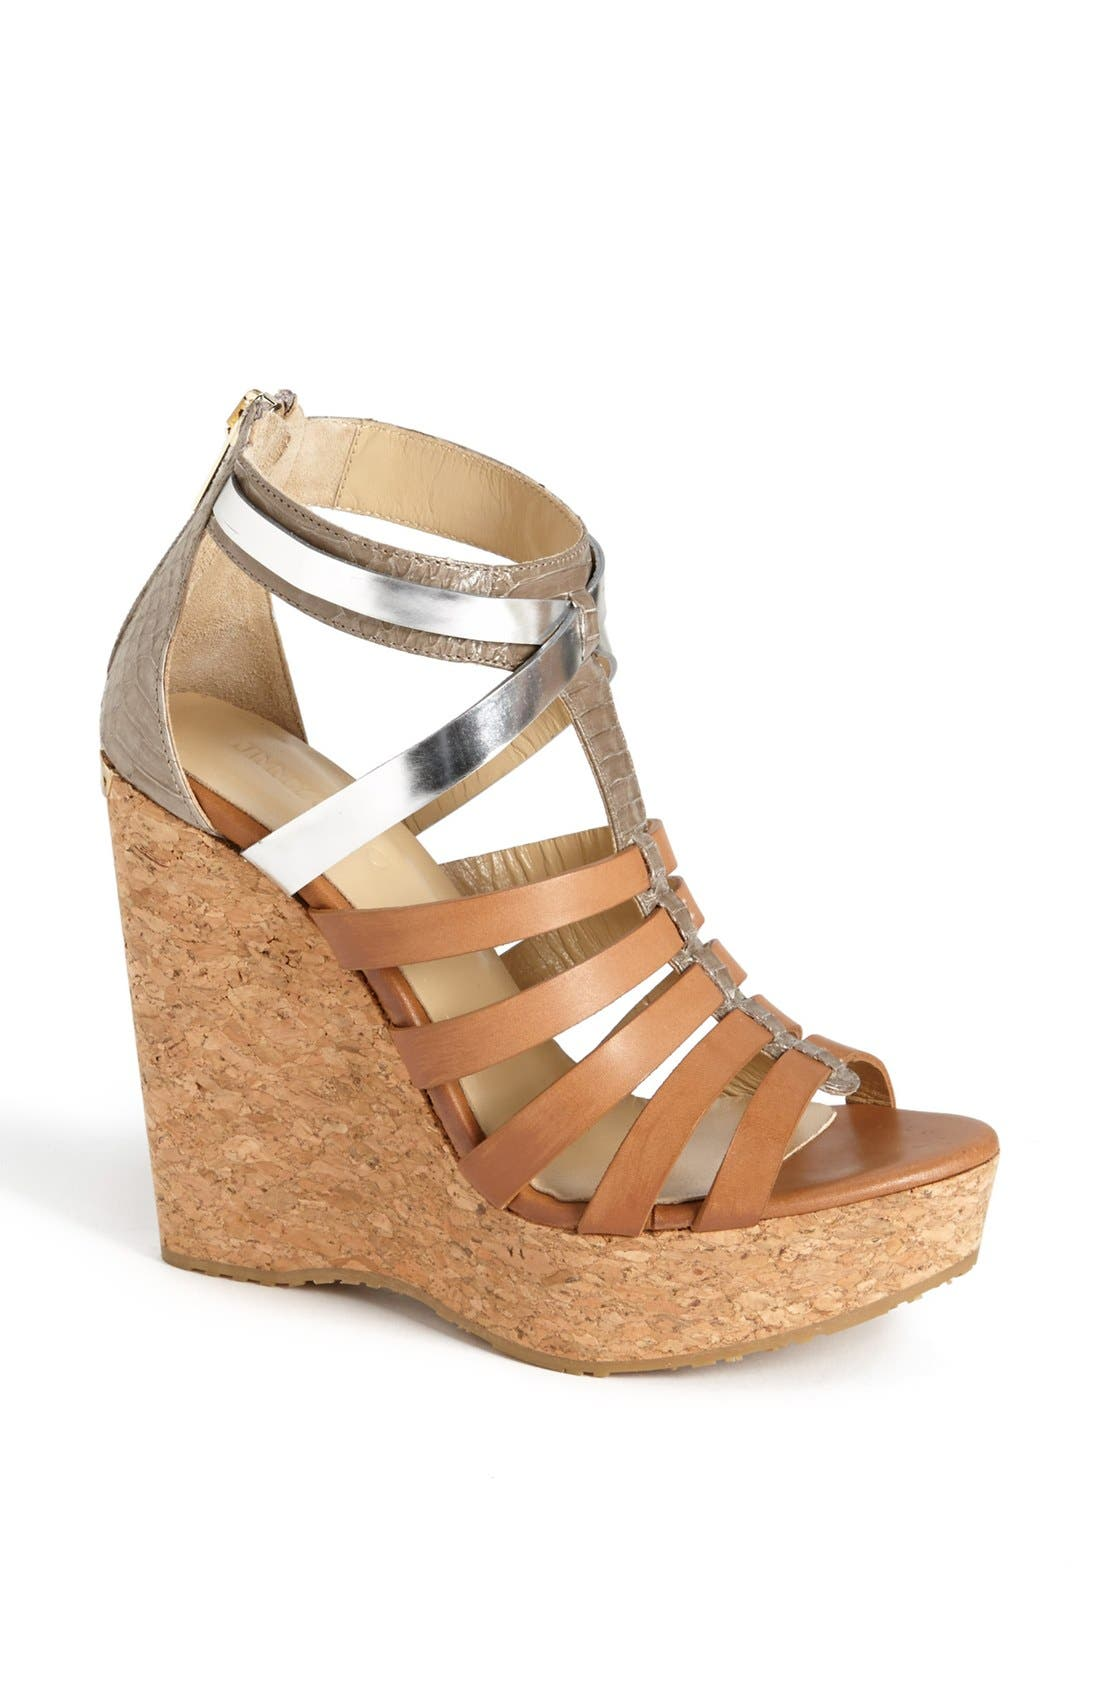 Alternate Image 1 Selected - Jimmy Choo 'Pierce' Wedge Sandal